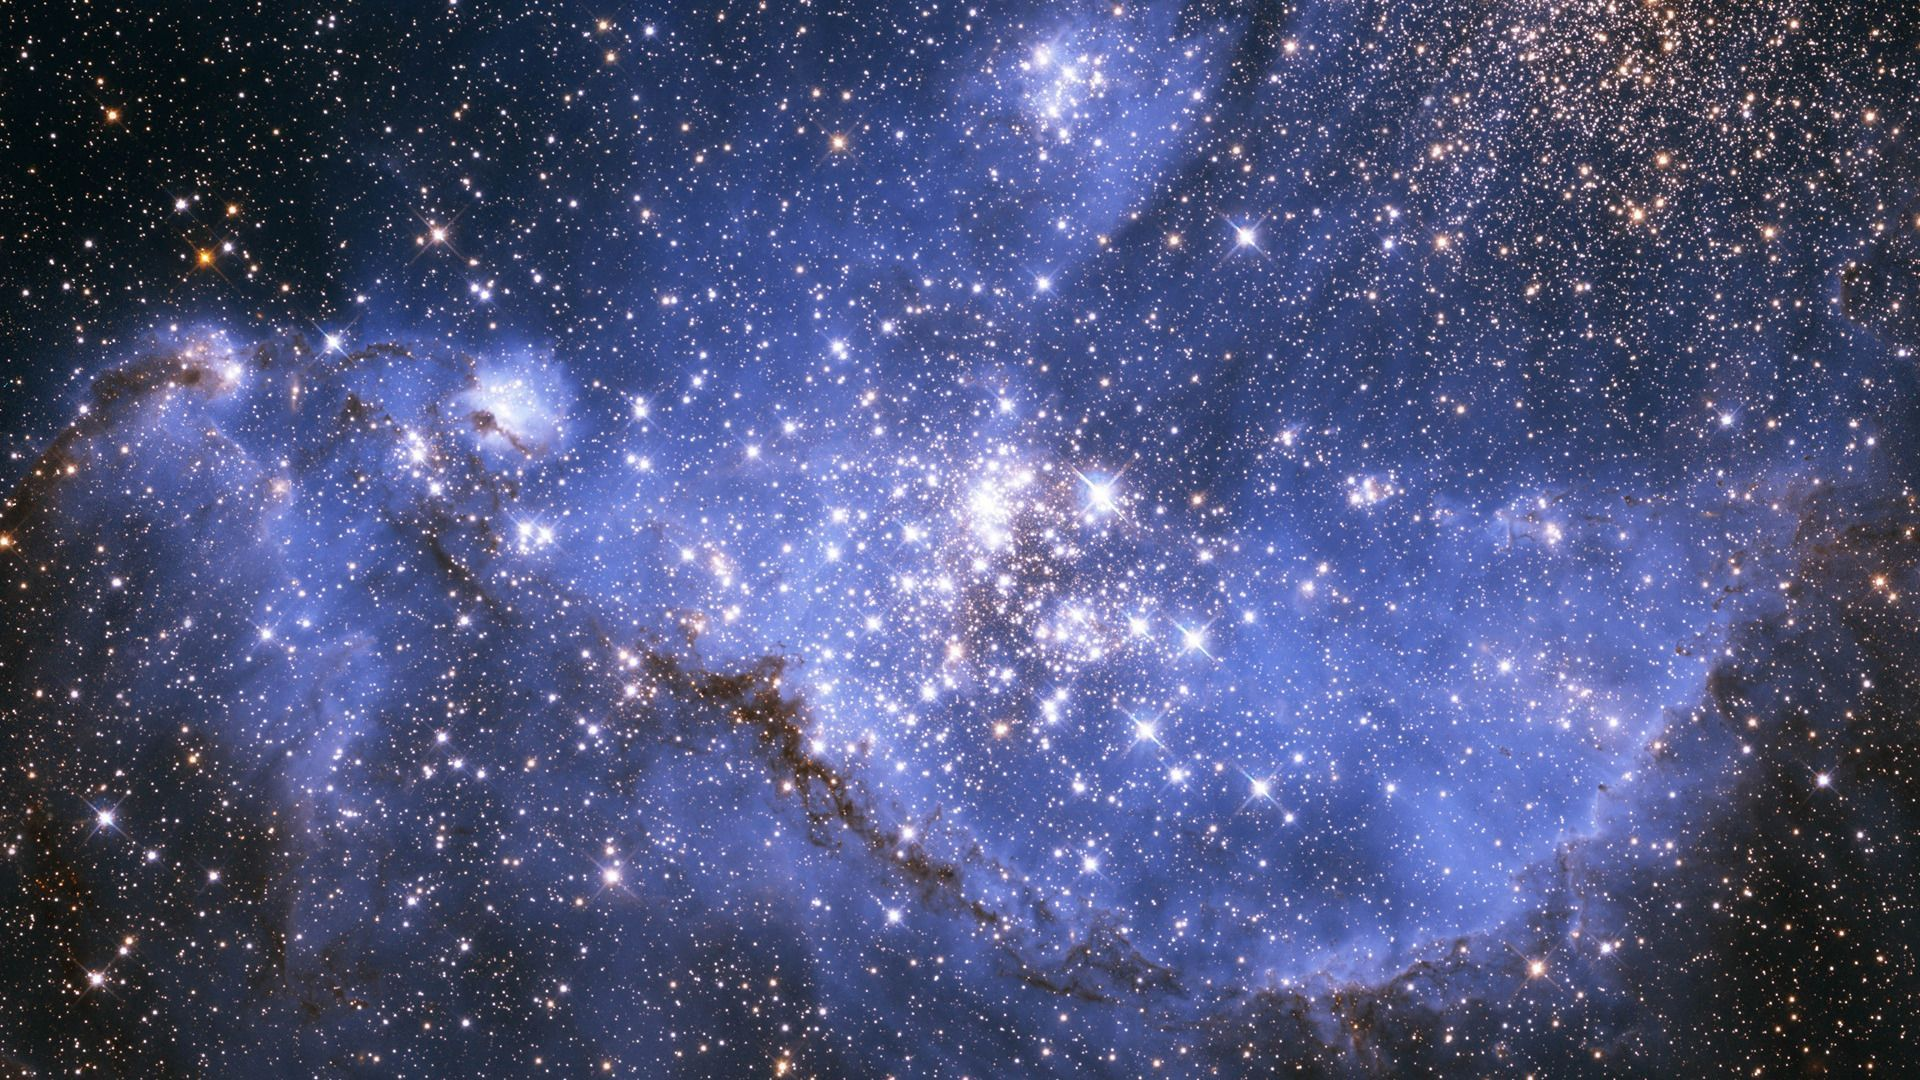 outer space stars desktop backgrounds #54859 - the hd wallpaper